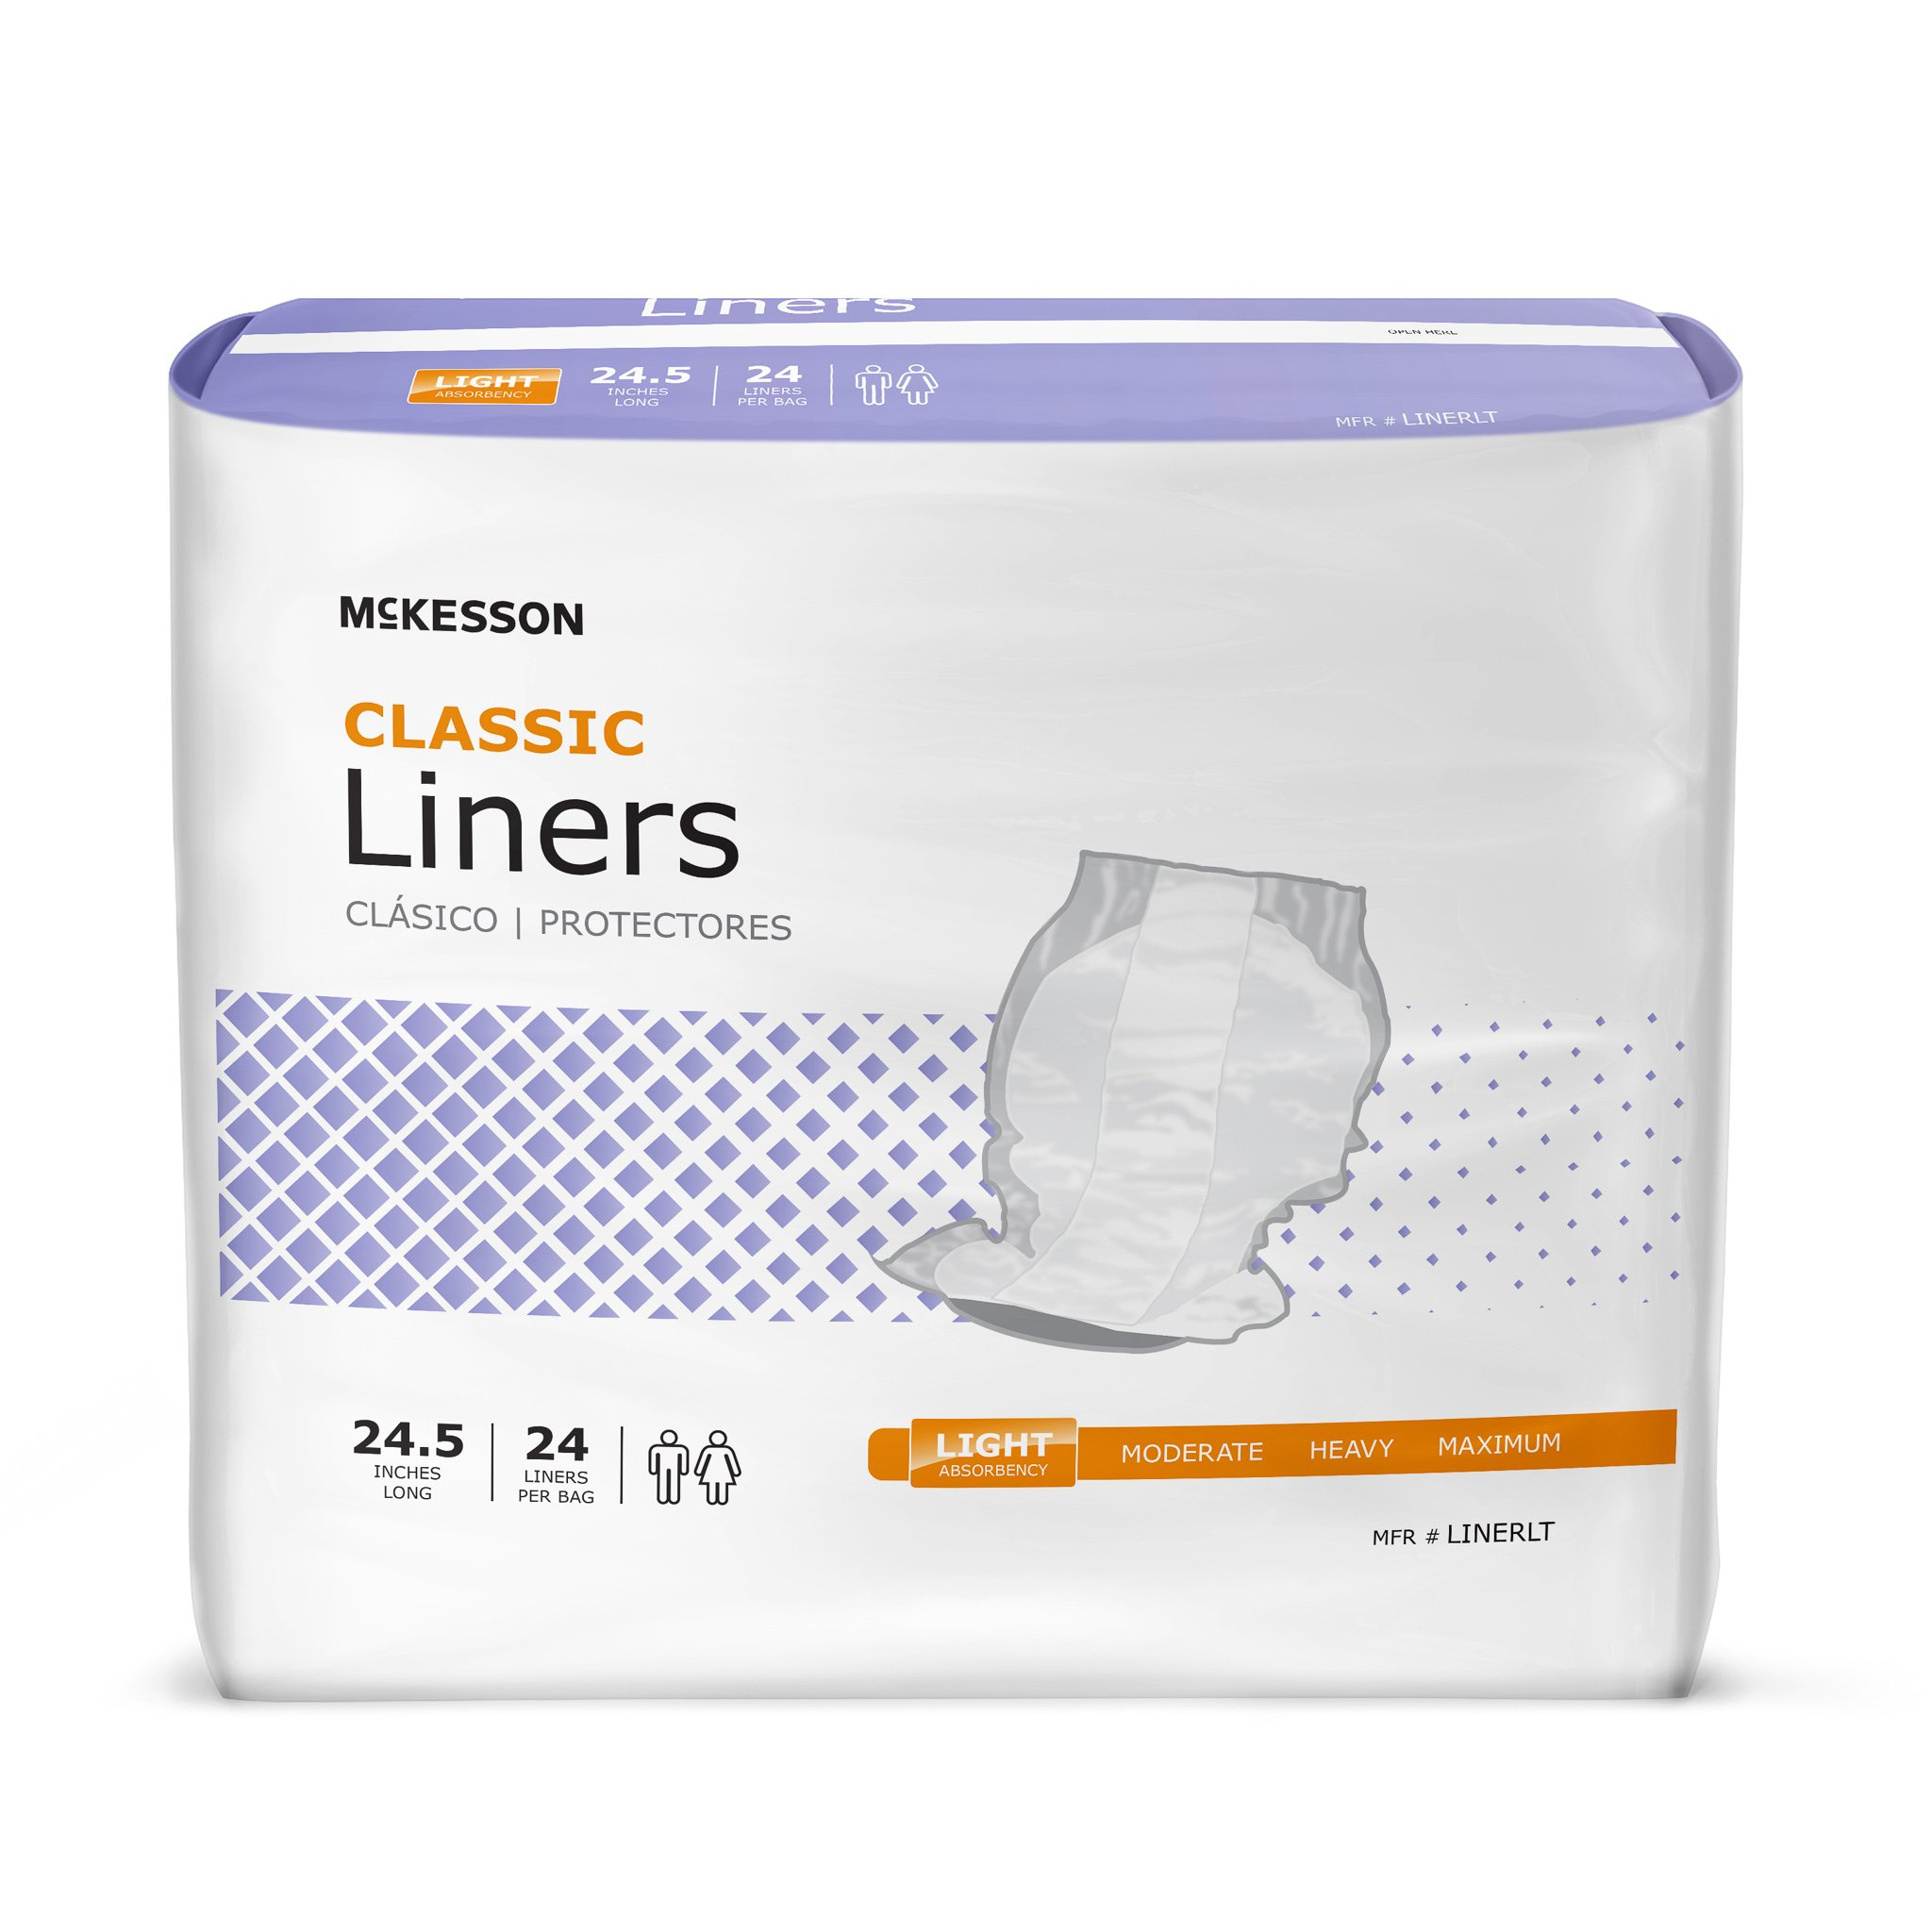 Incontinence Liner, McKesson Lite, 24-1/2 Inch Length Light Absorbency Polymer One Size Fits Most Unisex Disposable, LINERLT - Case of 96